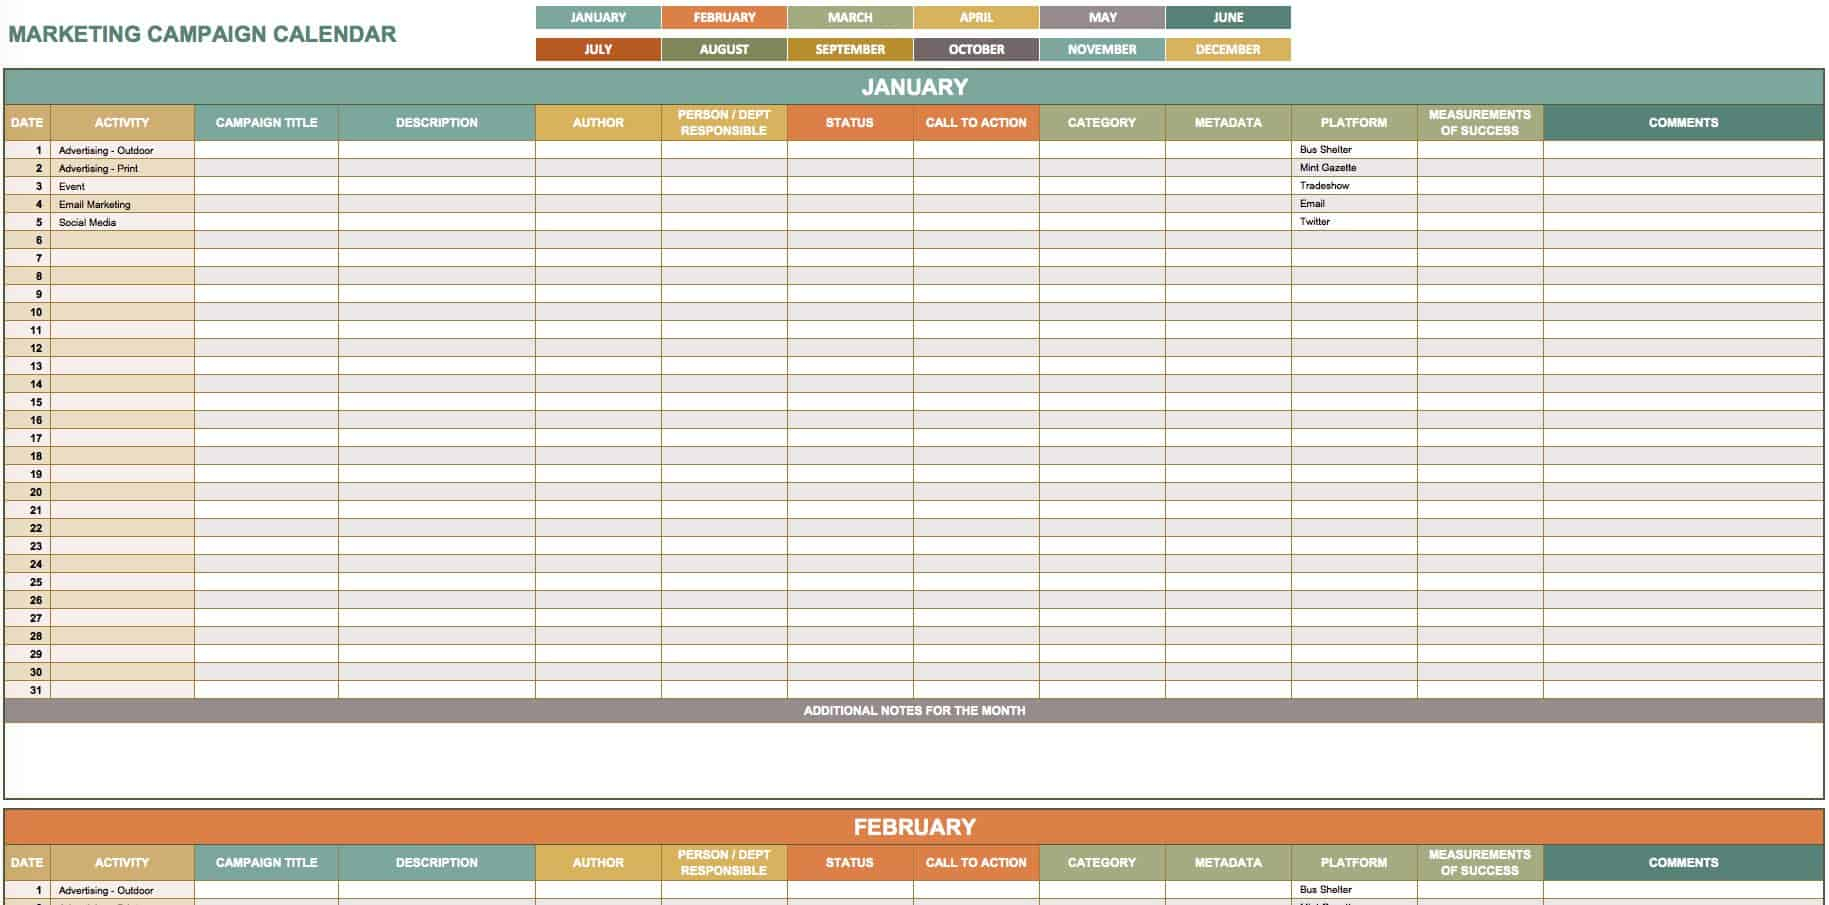 15+ Free Marketing Calendar Templates | Smartsheet with regard to Smartsheet Social Media Calendar